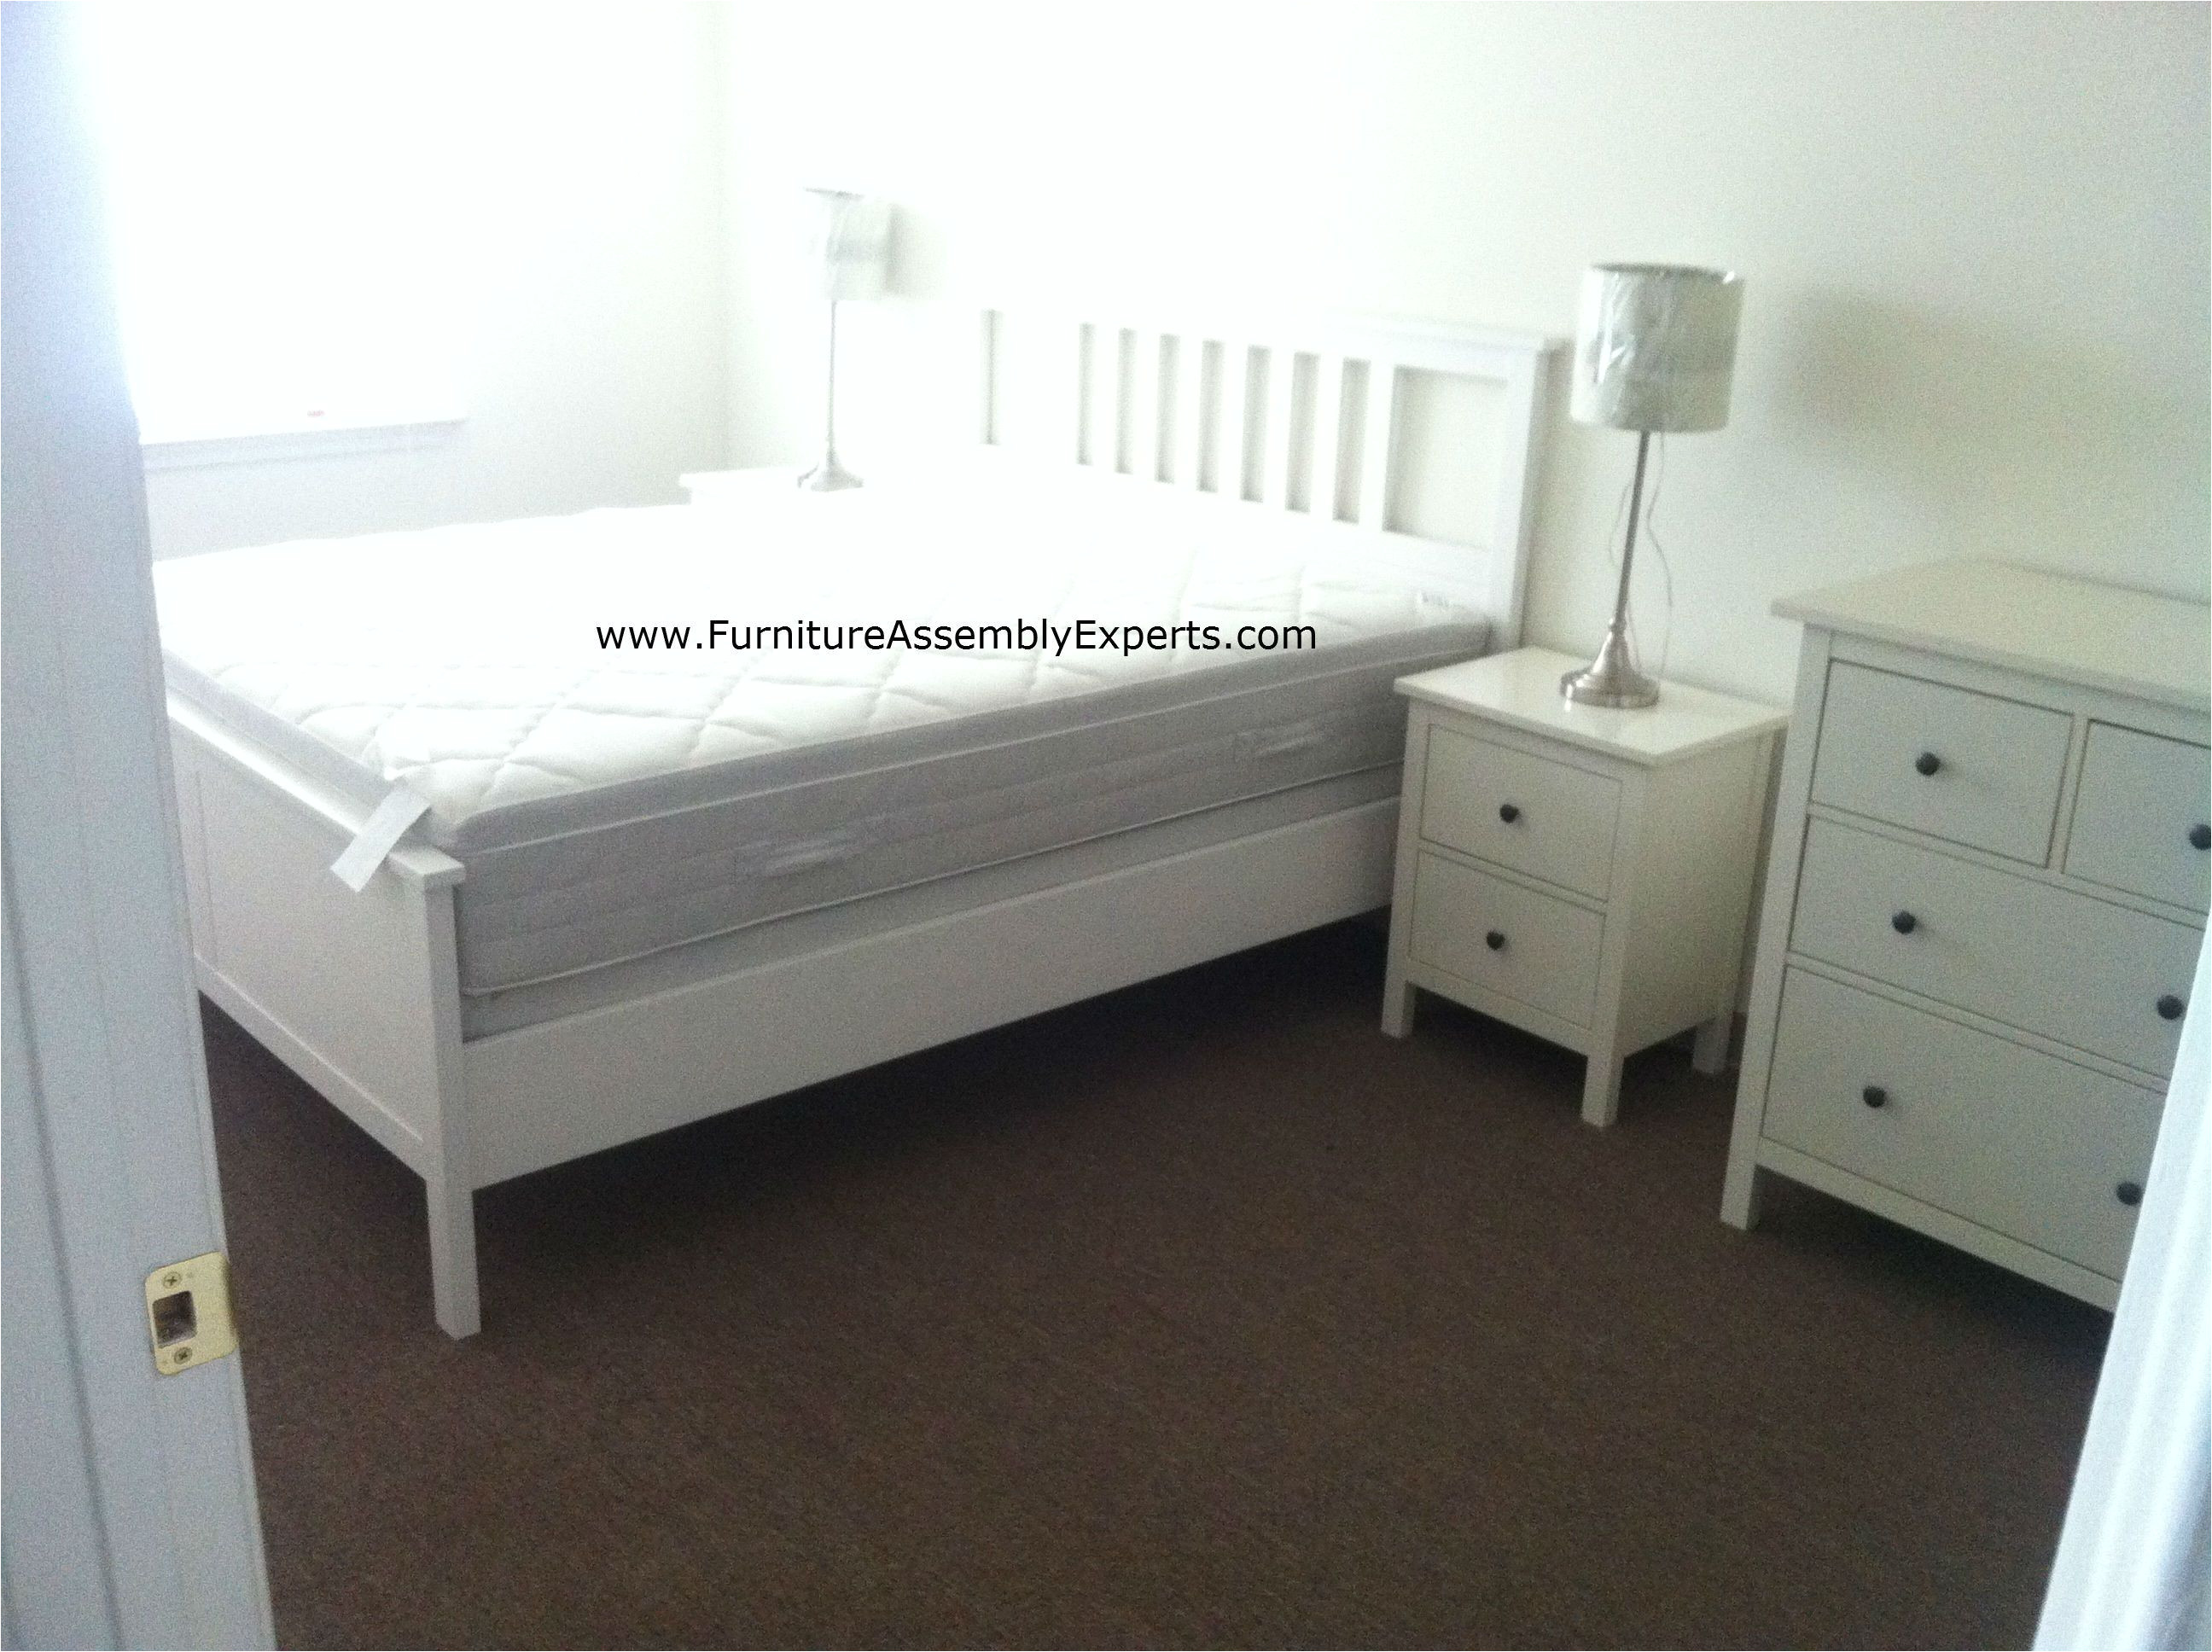 ikea hemnes bed and night stand assembled for a john hopkins university college student moving in baltimore md by furniture assembly experts llc